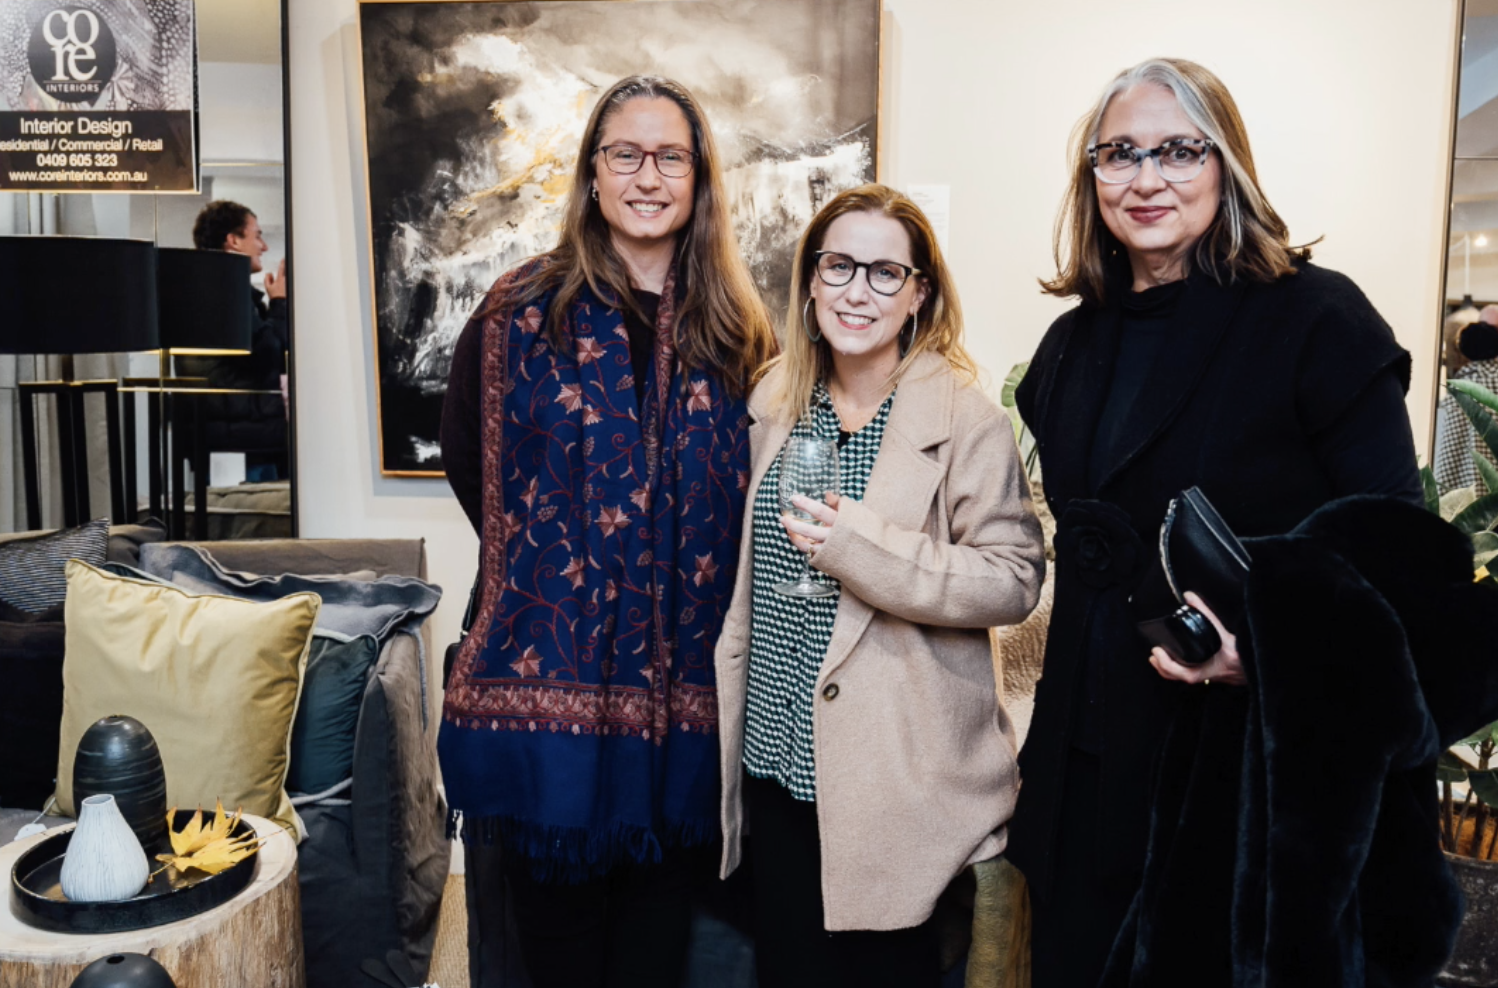 Jennifer Angelatos of Core Interiors [Right] collaboration capsule curated with BDA Interiors, Kylie Fogarty [Centre] - Artist painting [on wall behind], MCM House furniture range, Cadry's Colorscope rug collections & ceramicist' Tanya McArthur [Left] works [on table].